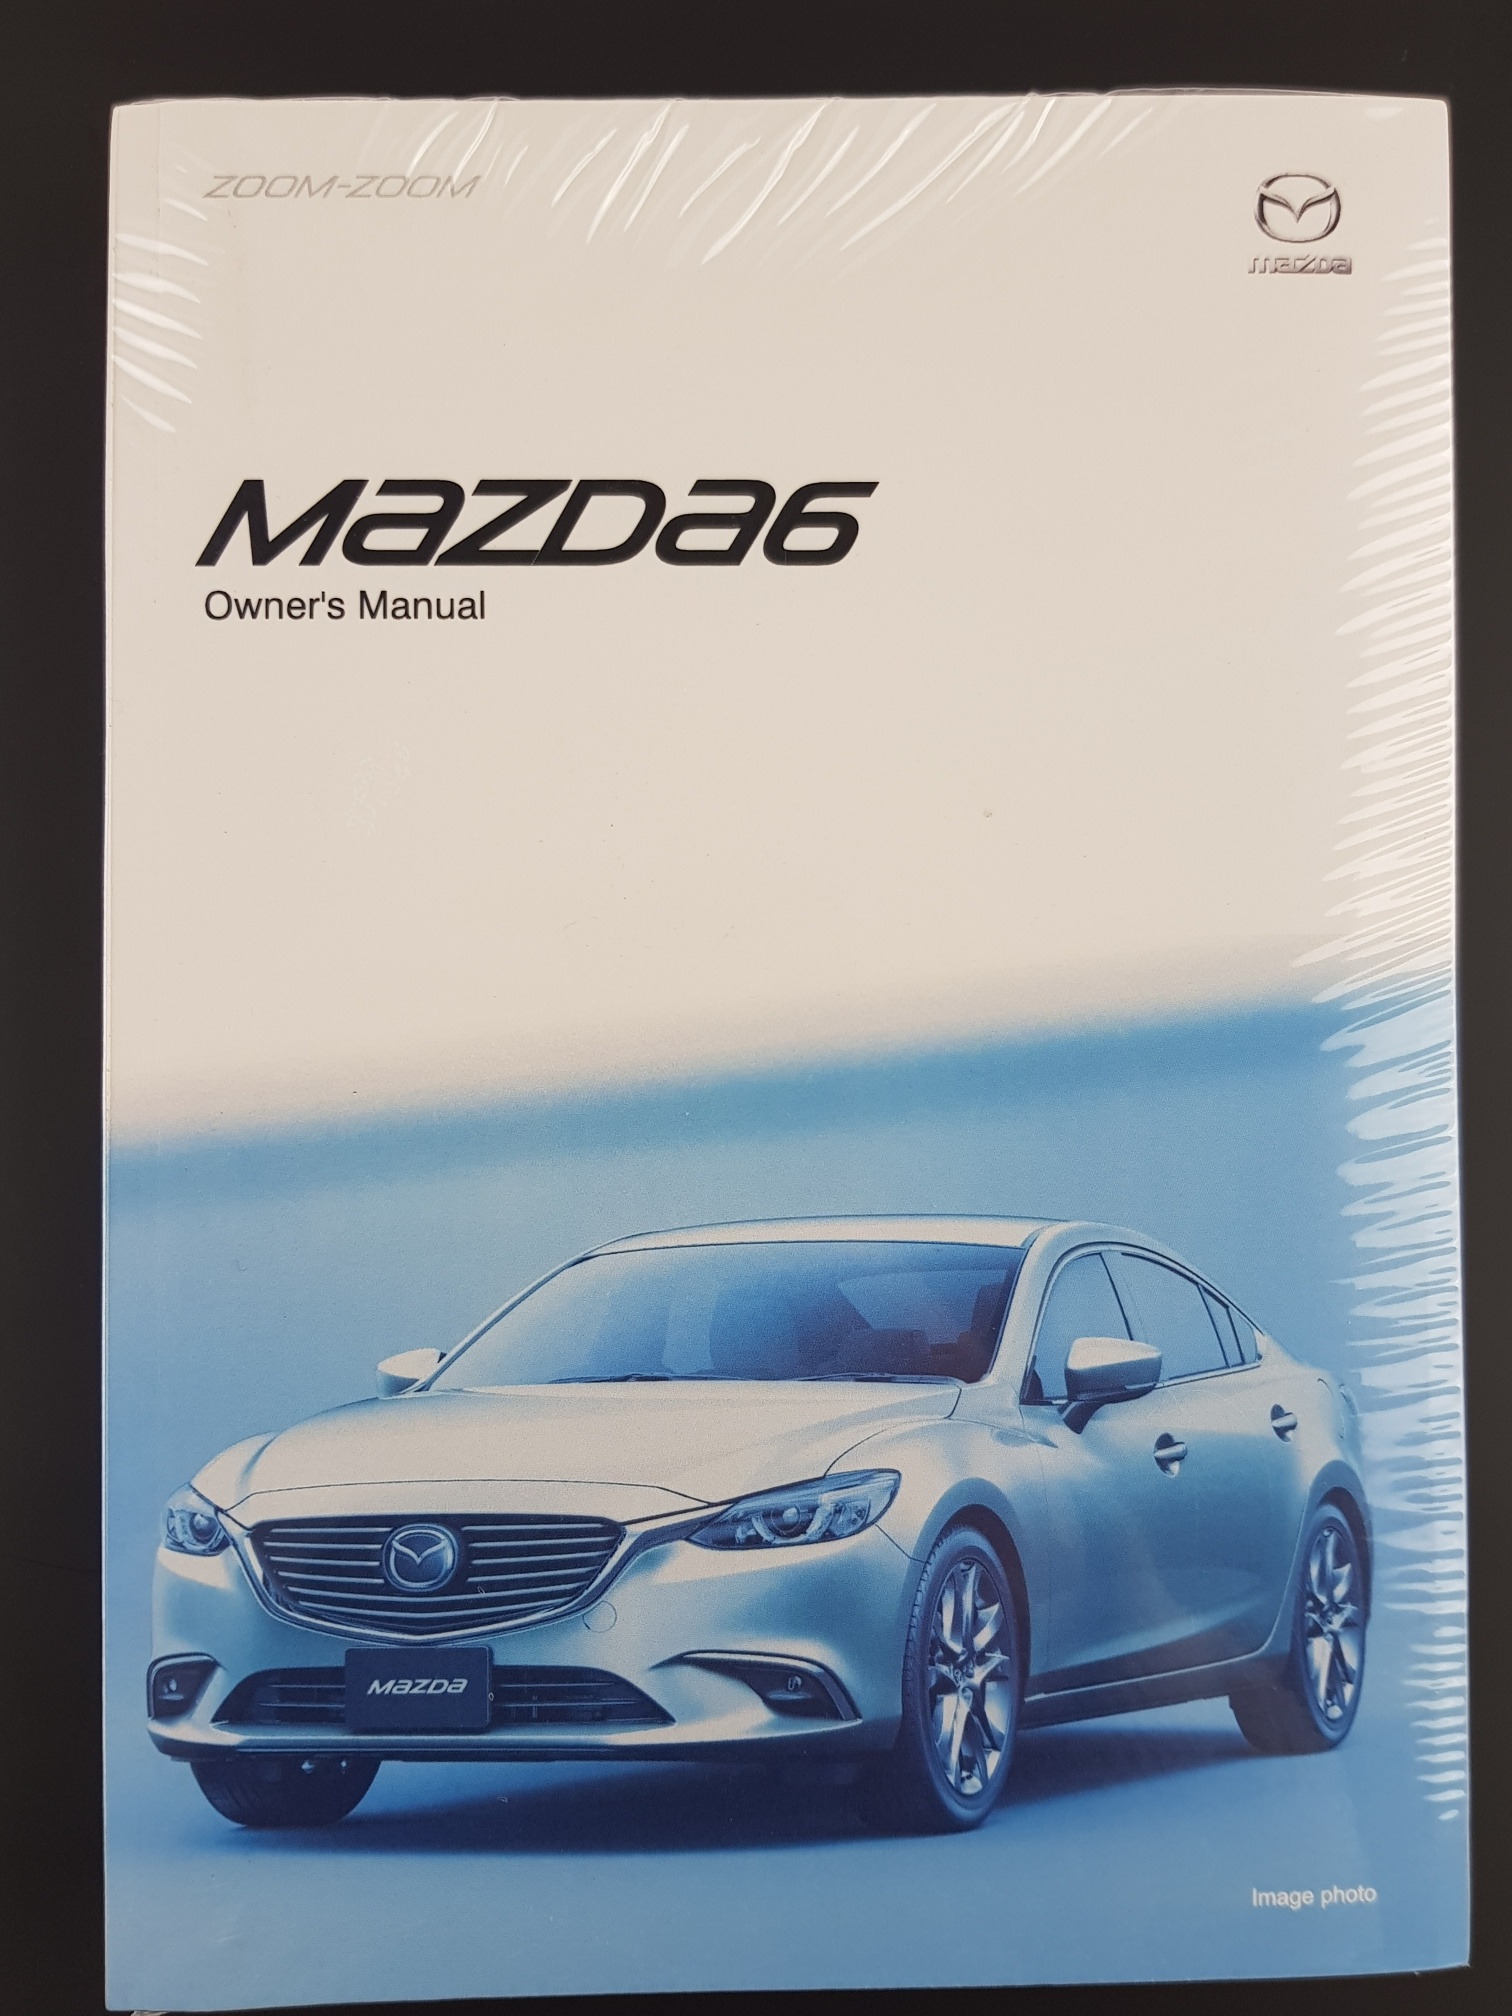 New Genuine Mazda 6 Owners Manual GL Mazda6 Original Publication 6/2016   Current